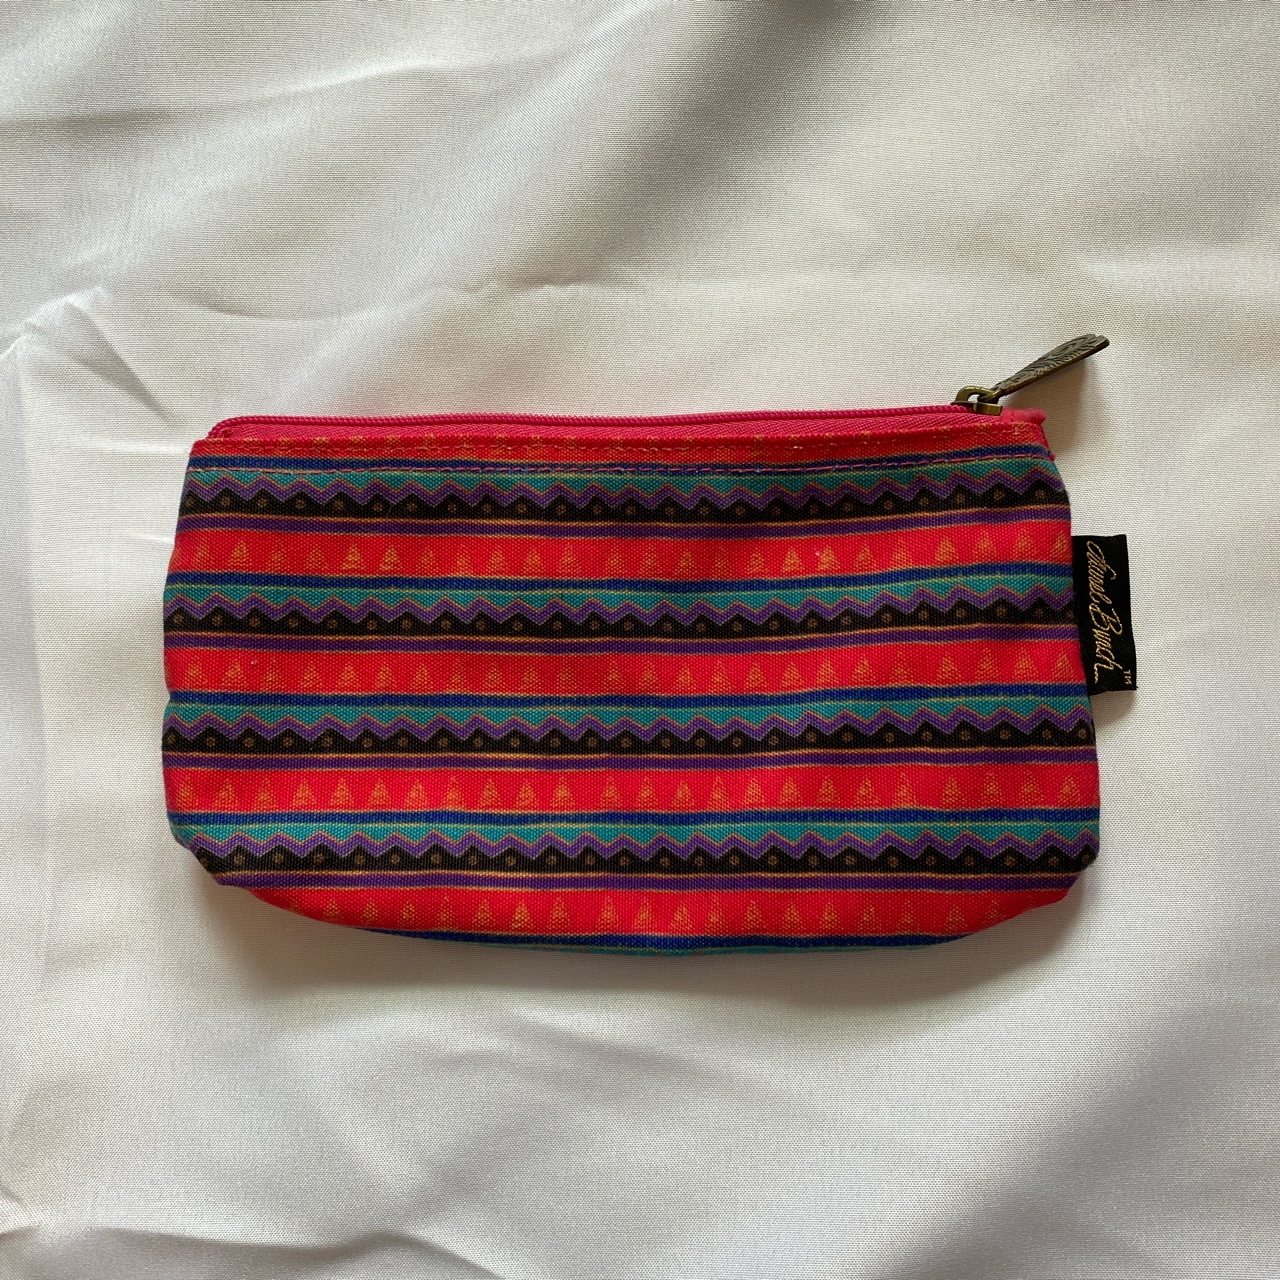 Product Image 1 - *Laurel Burch striped zippered pouch.